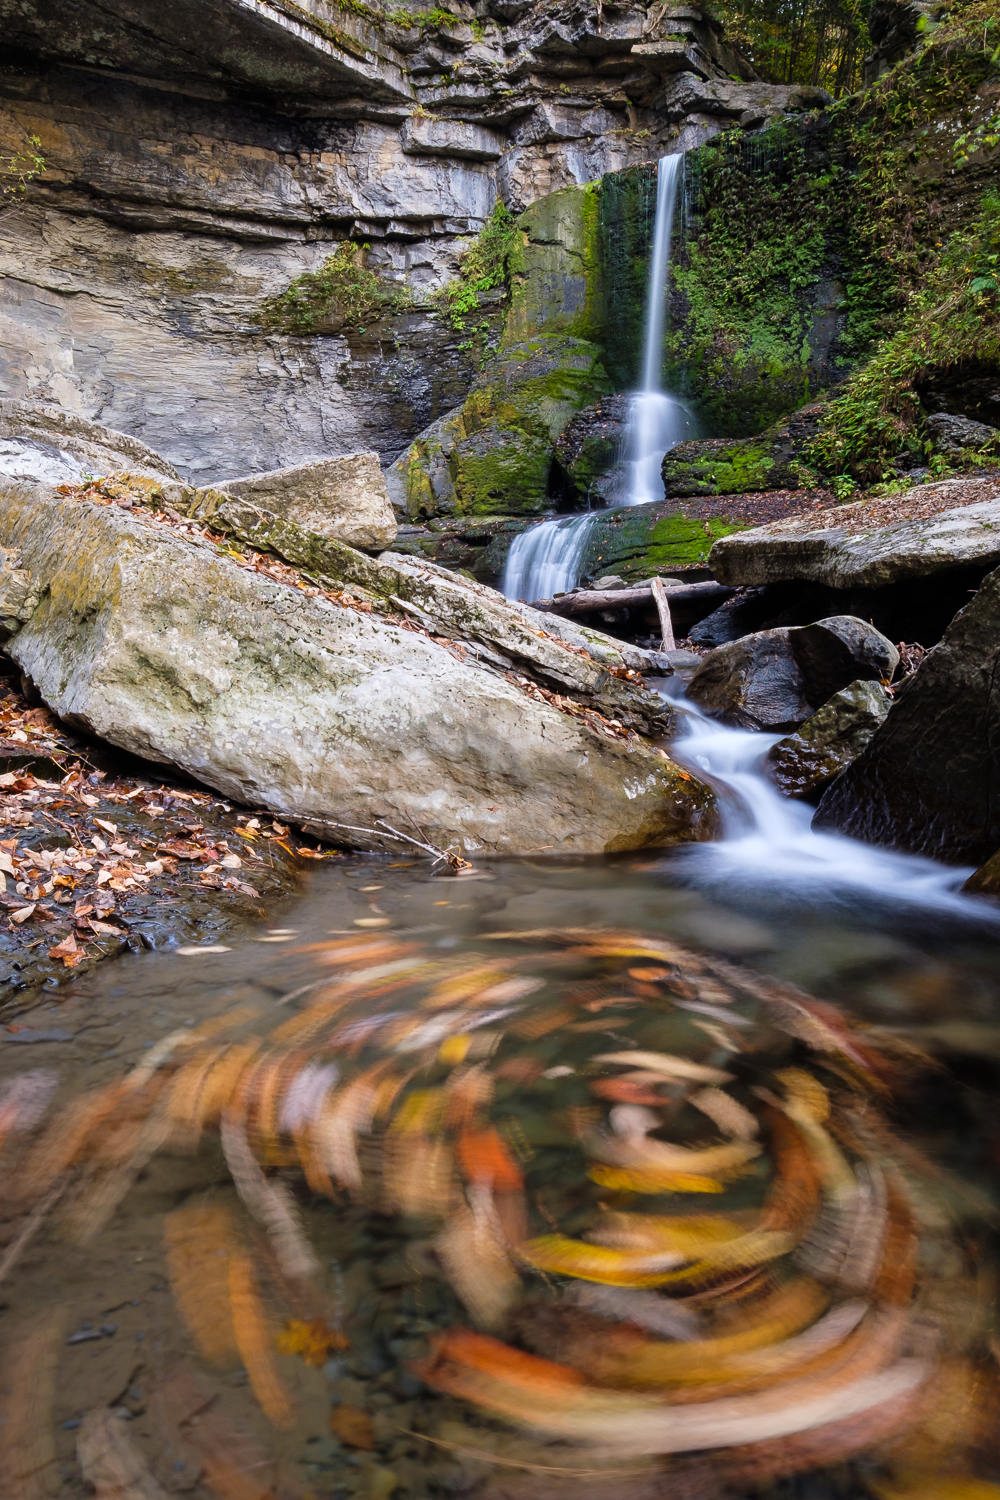 Fallen leaves swirl beneath the famous Cowsheds of Fillmore Glen State Park, near Moravia, NY.